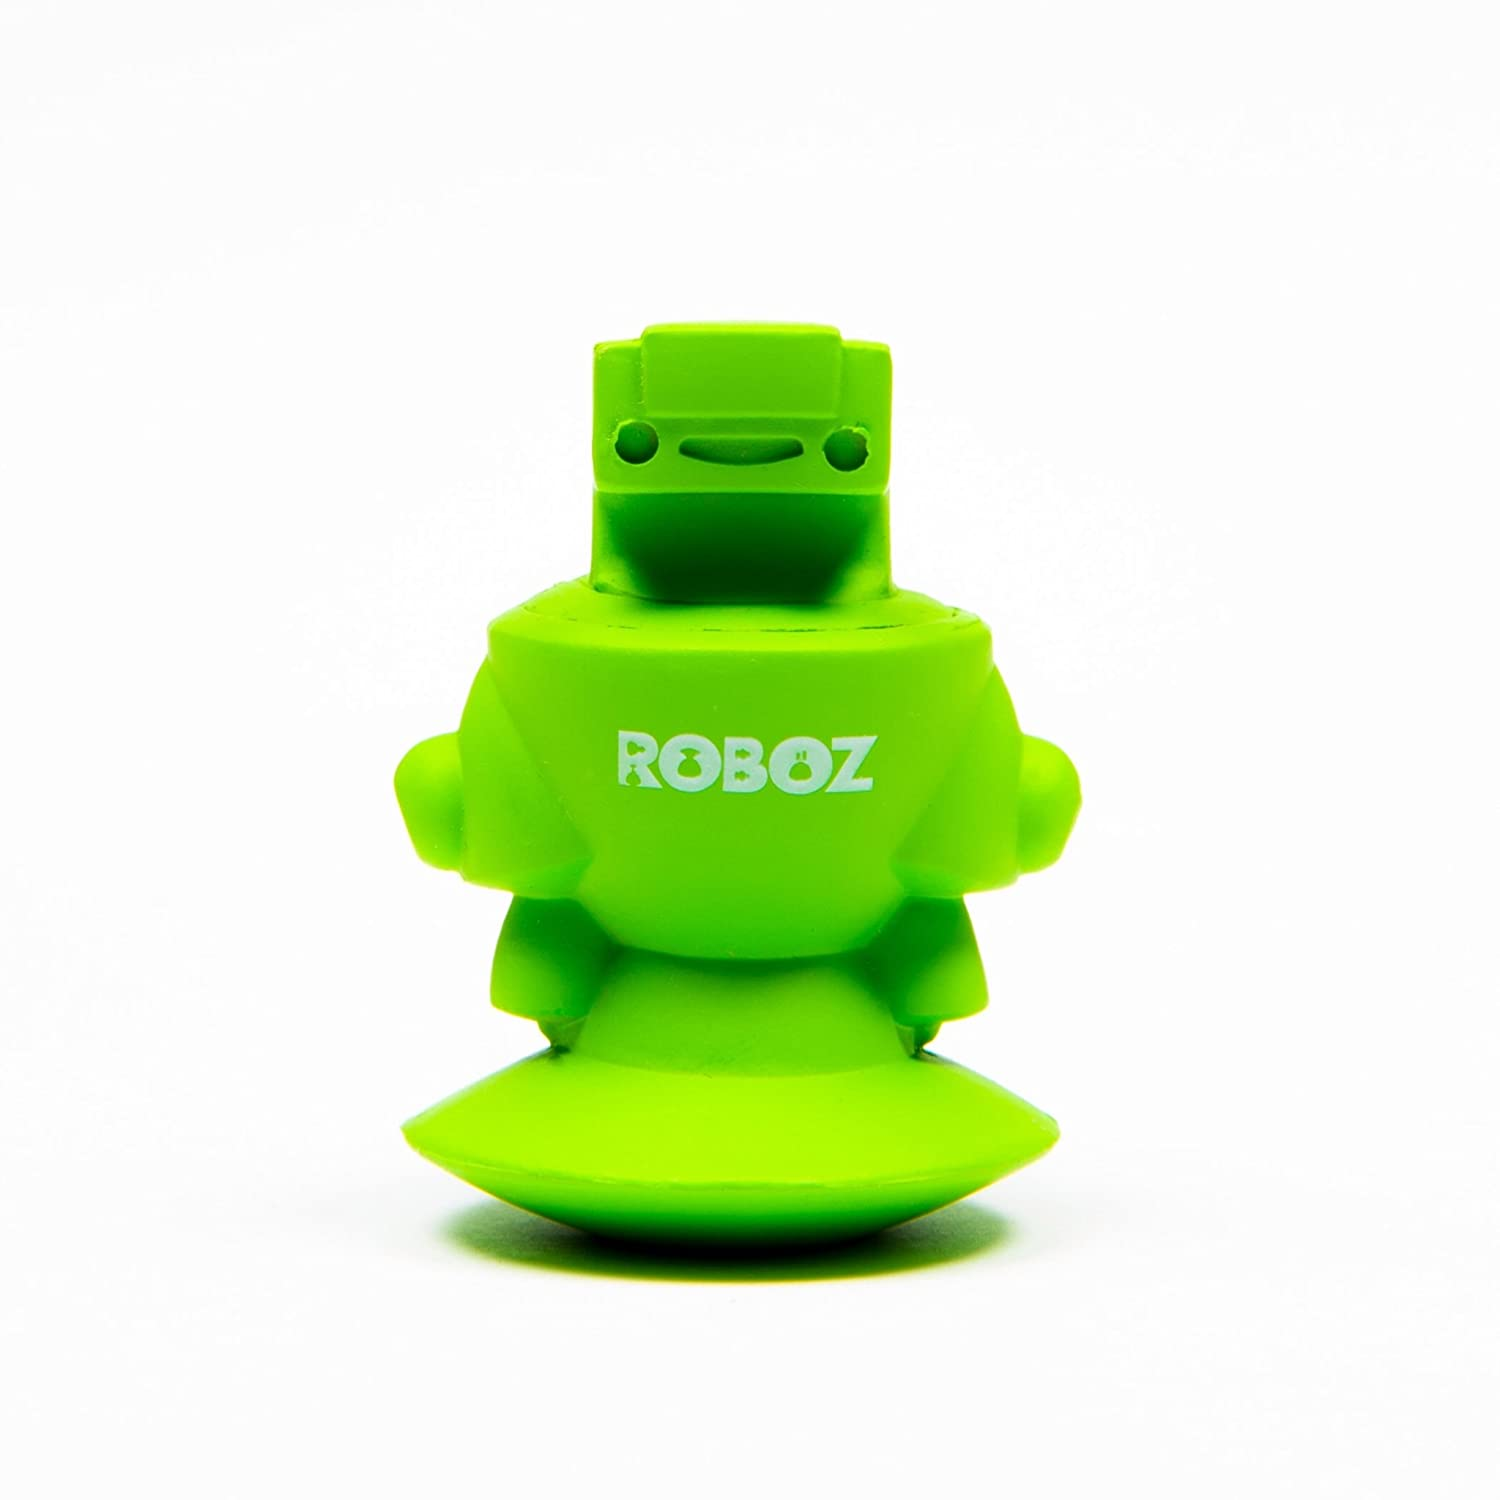 Roboz - a robot toy and a collectible card to go with it: Amazon co